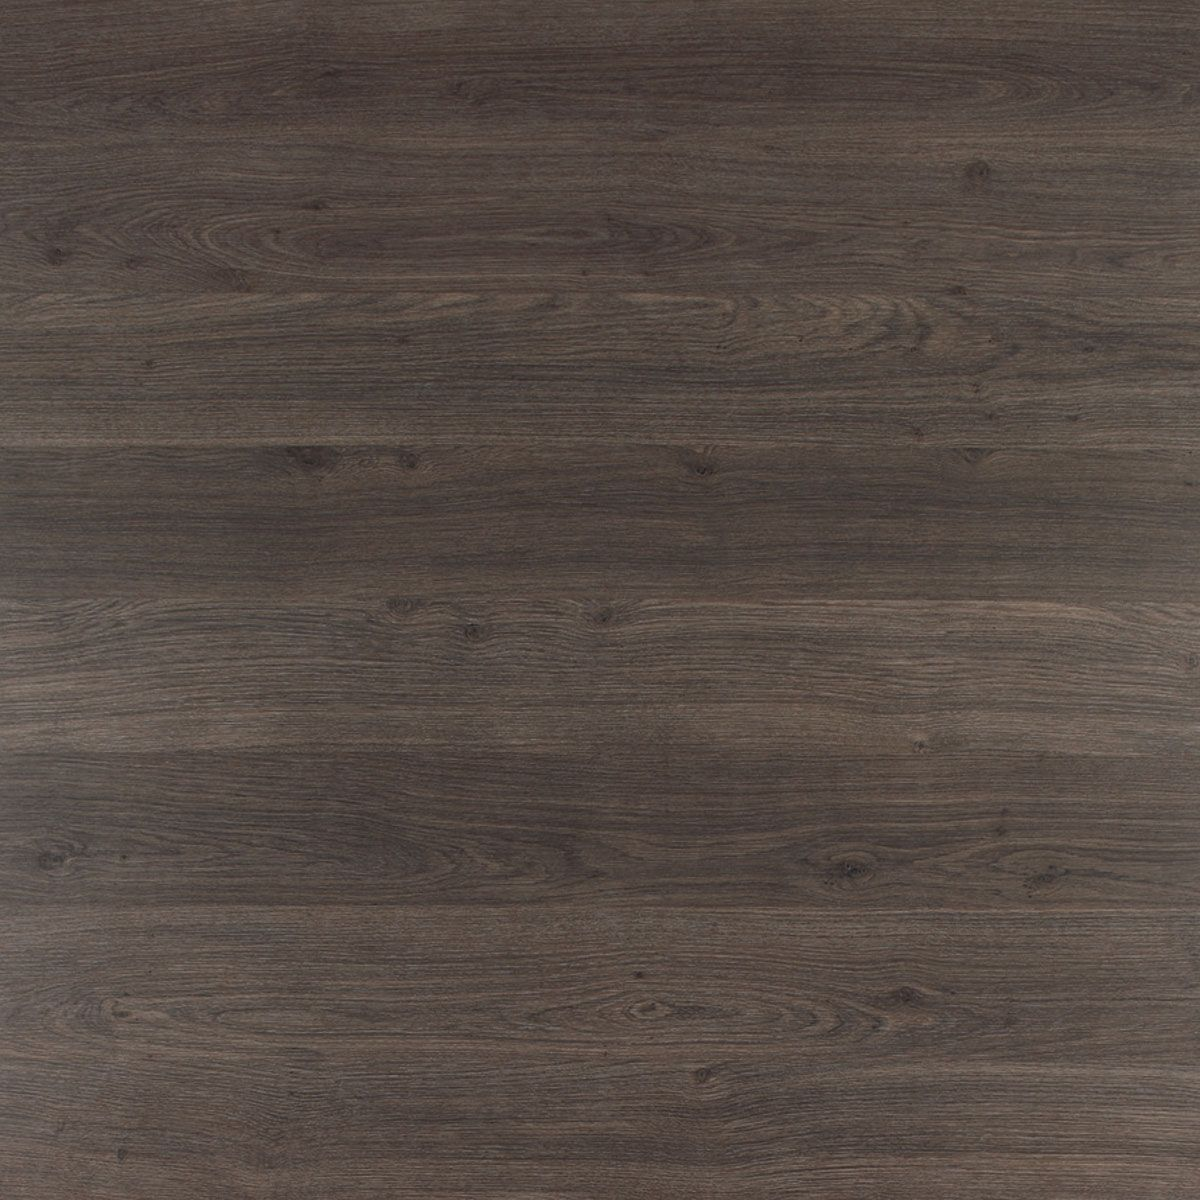 Elinga Dark Grey Varnished Oak Planks | Quick-Step.com - Dark Wood Floors With Hint Of Grey. Must Have These One Day In My